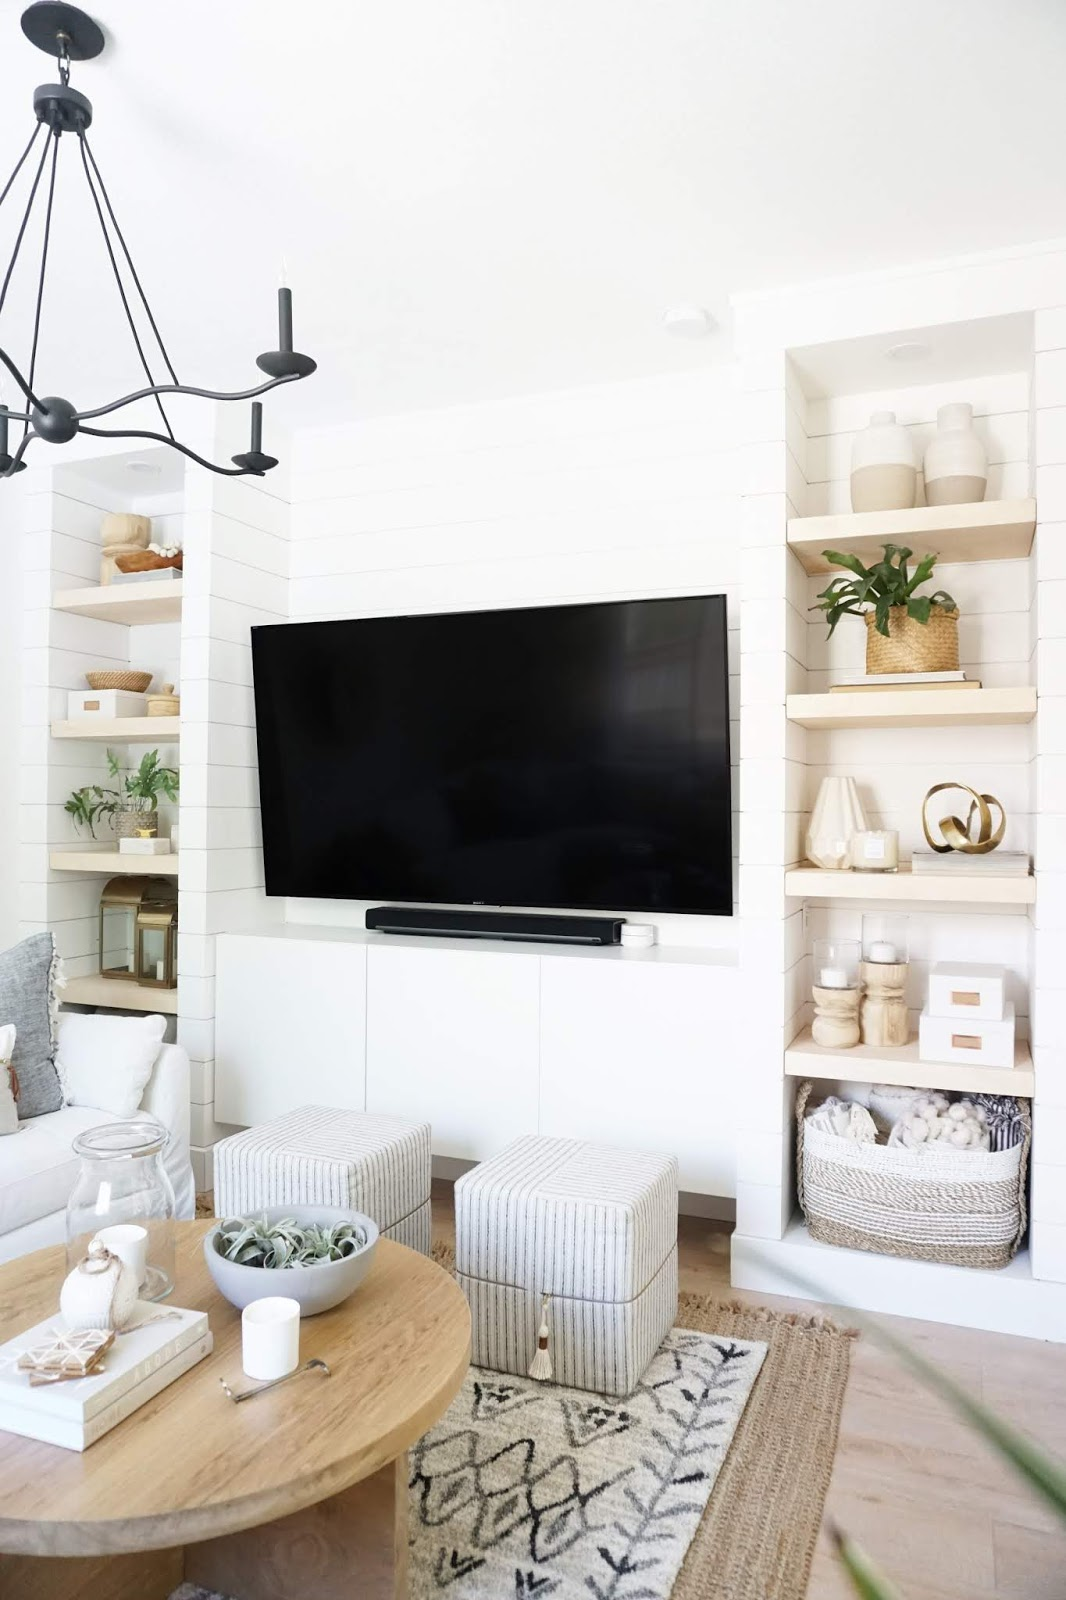 Built-in TV wall unit with shelves and flap